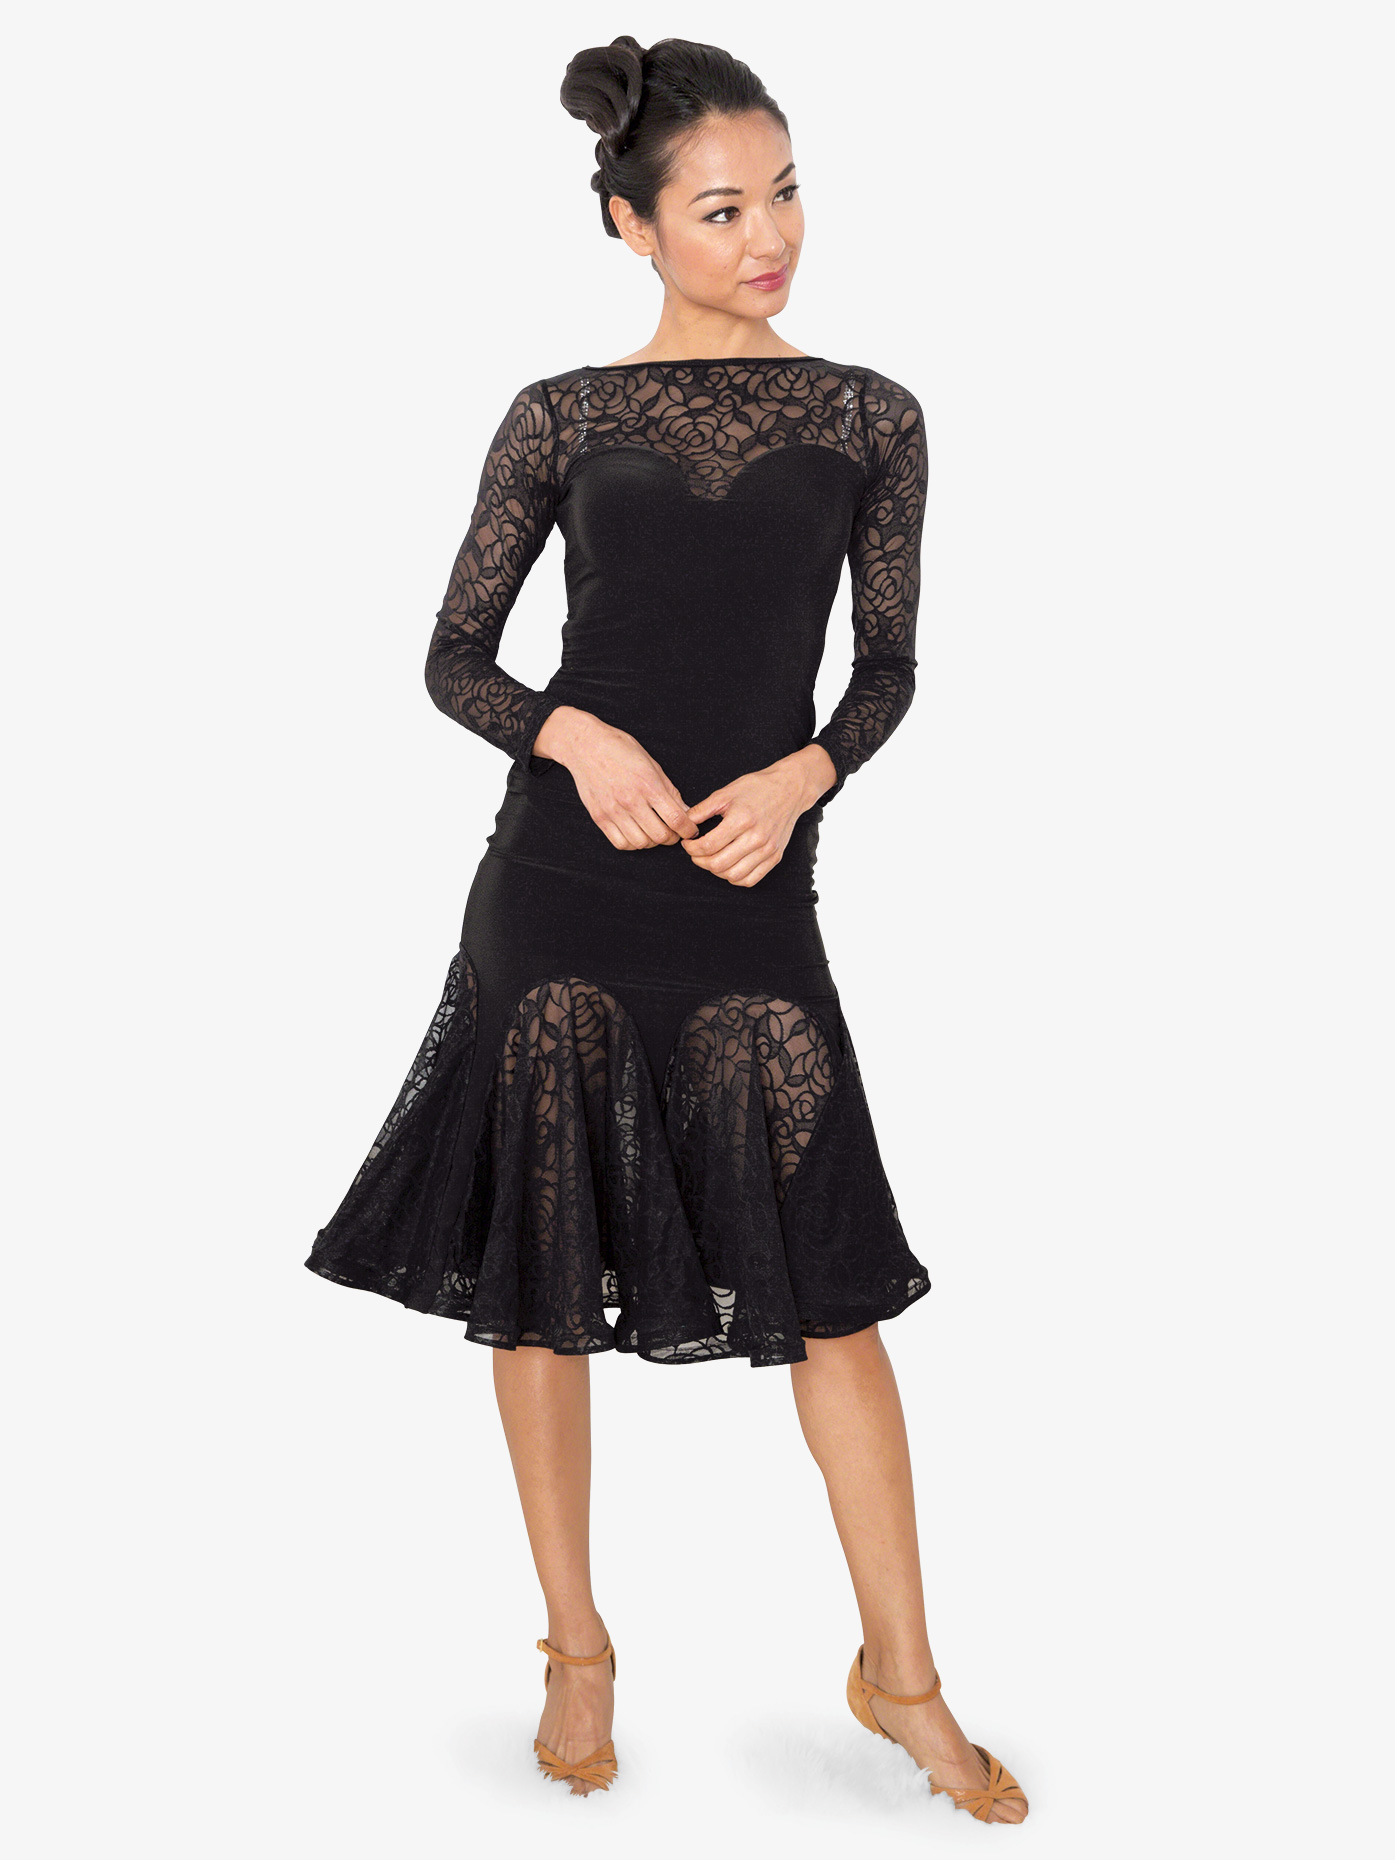 Dance America Womens Short Lace Godet Ballroom Dance Skirt S814